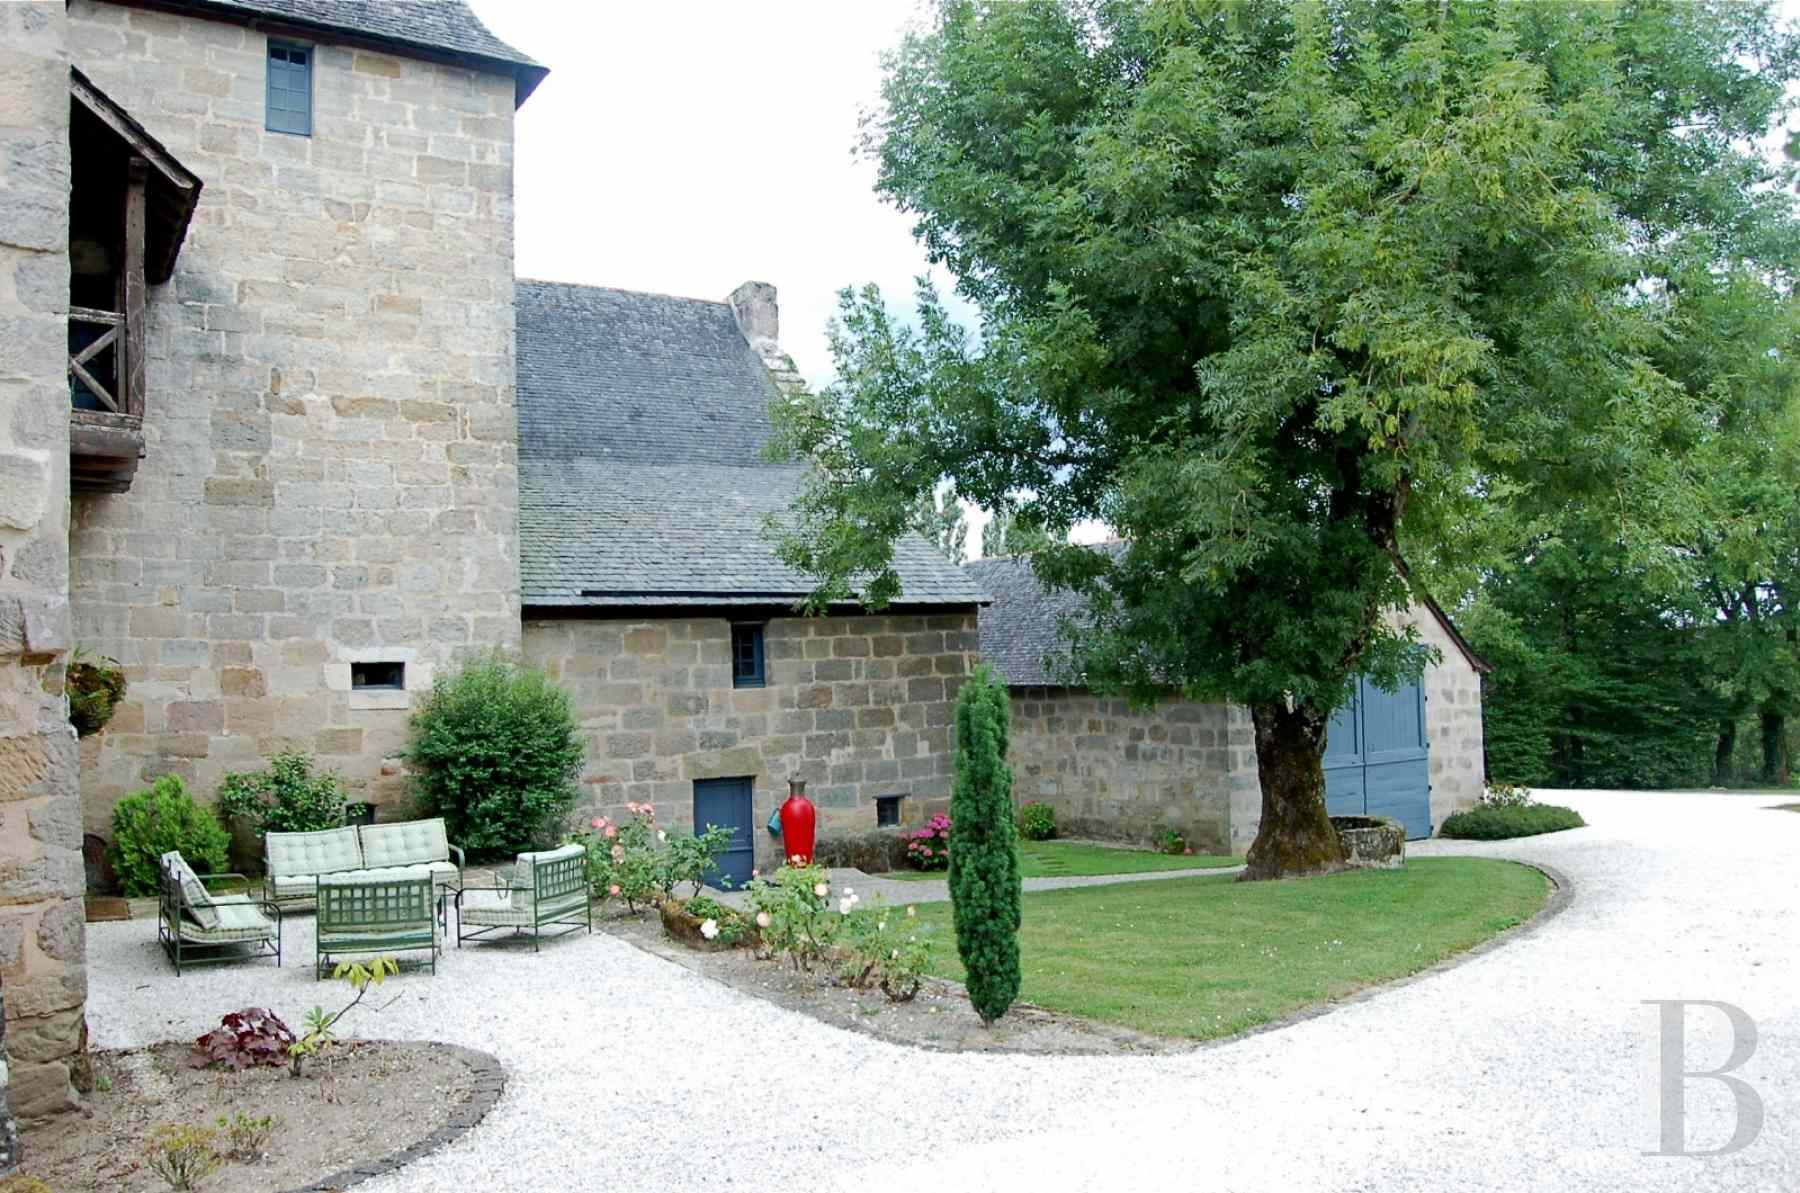 property for sale France limousin perigord quercy - 5 zoom